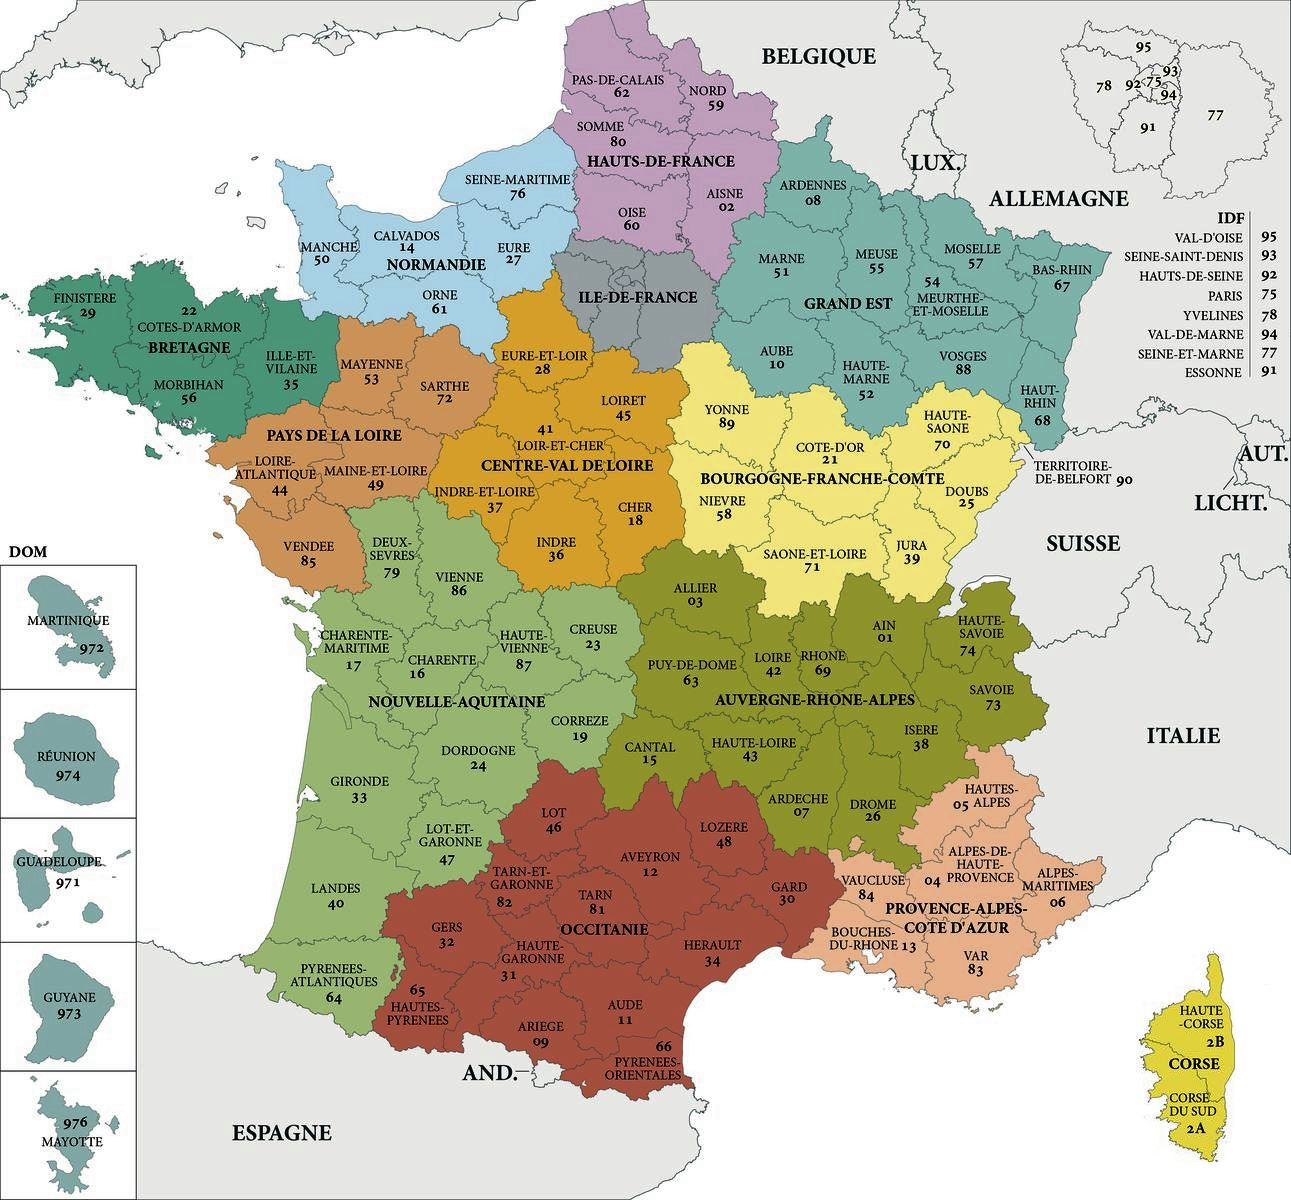 Carte De France Departements : Carte Des Départements De France intérieur Carte De France Avec Departement A Imprimer